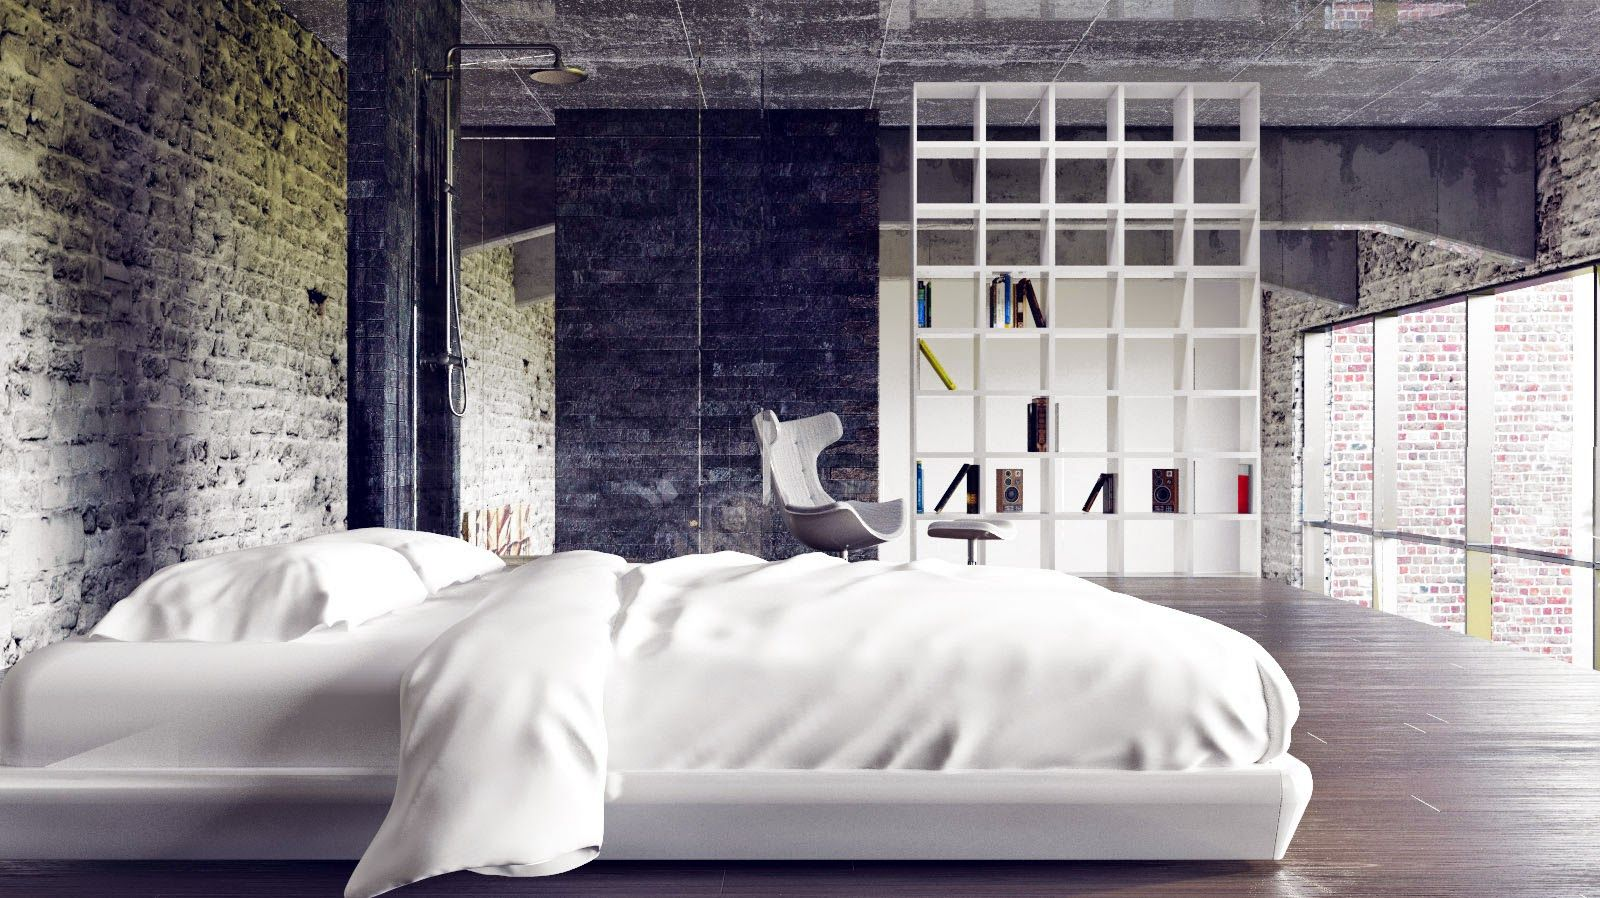 Bedroom Amazing Urban Modern Industrial Interior Style Loft Bedroom Design Ideas Cool Loft Bedroom Desig Industrial Bedroom Design Urban Bedroom Modern Bedroom